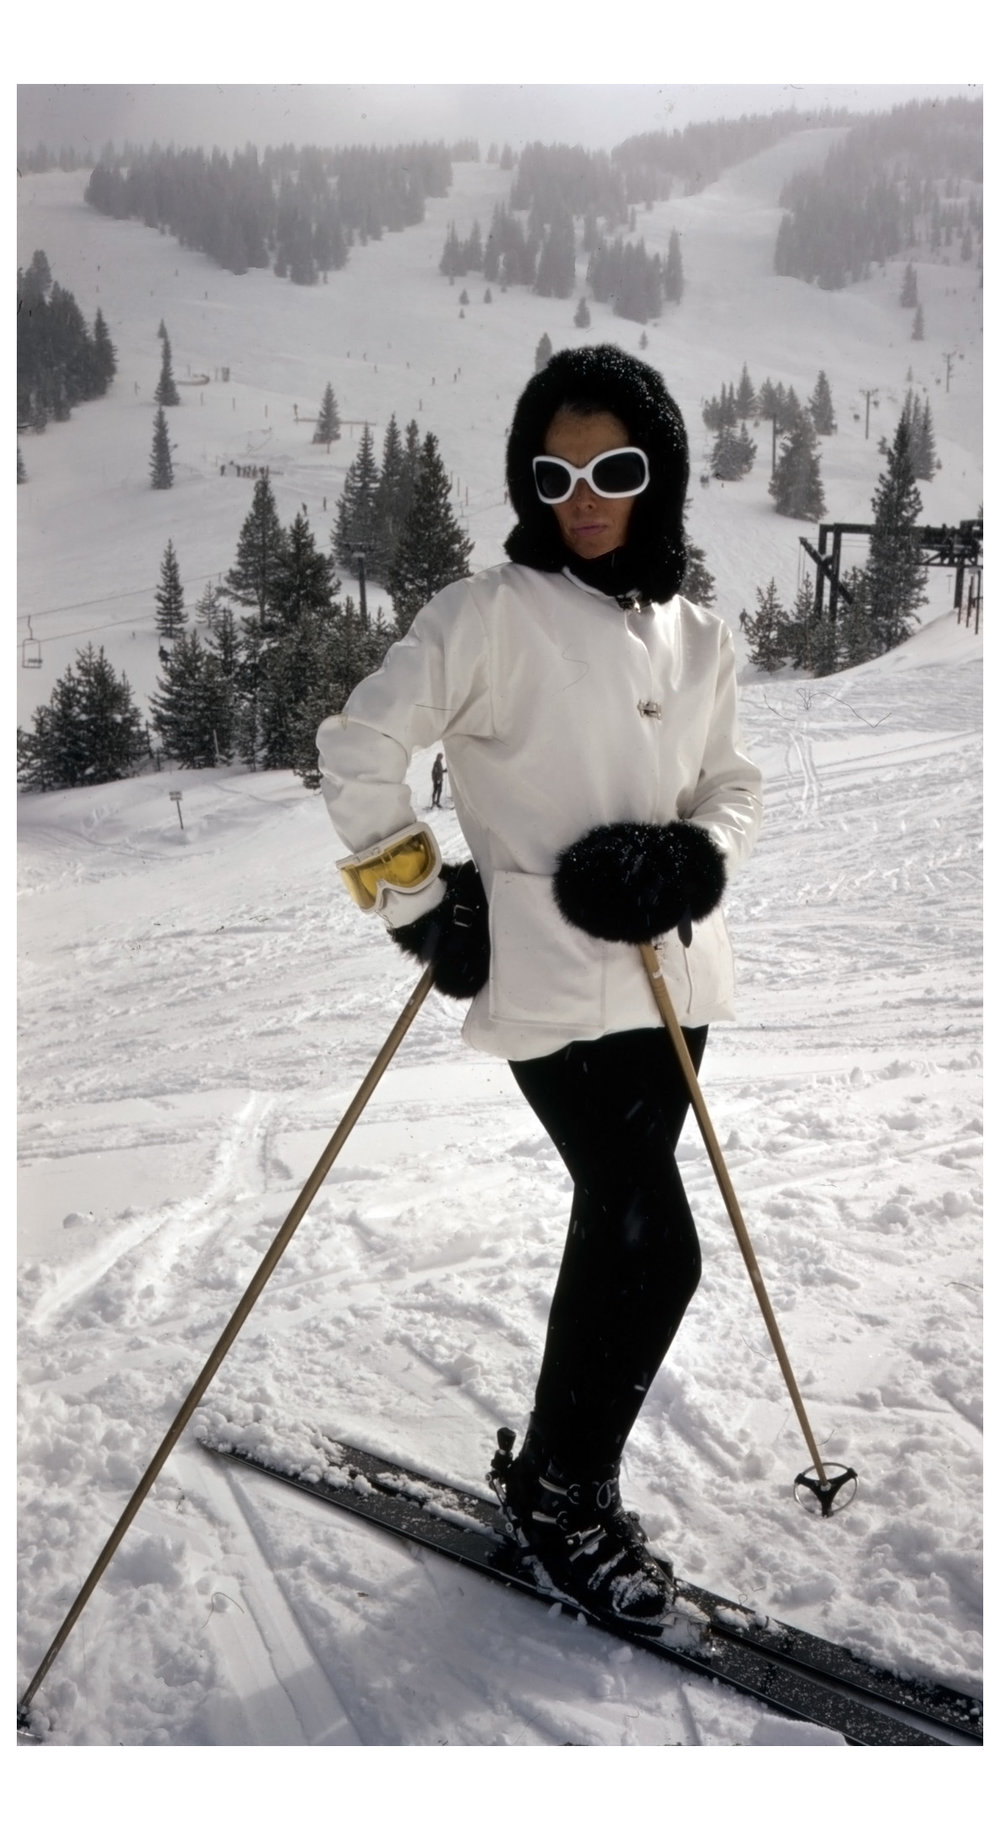 ann-bonfoey-taylor-full-length-portrait-wearing-a-ski-outfit-including-a-white-vinyl-jacket-black-pants-and-a-black-rabbit-hood-vail-colorado-1967.jpg